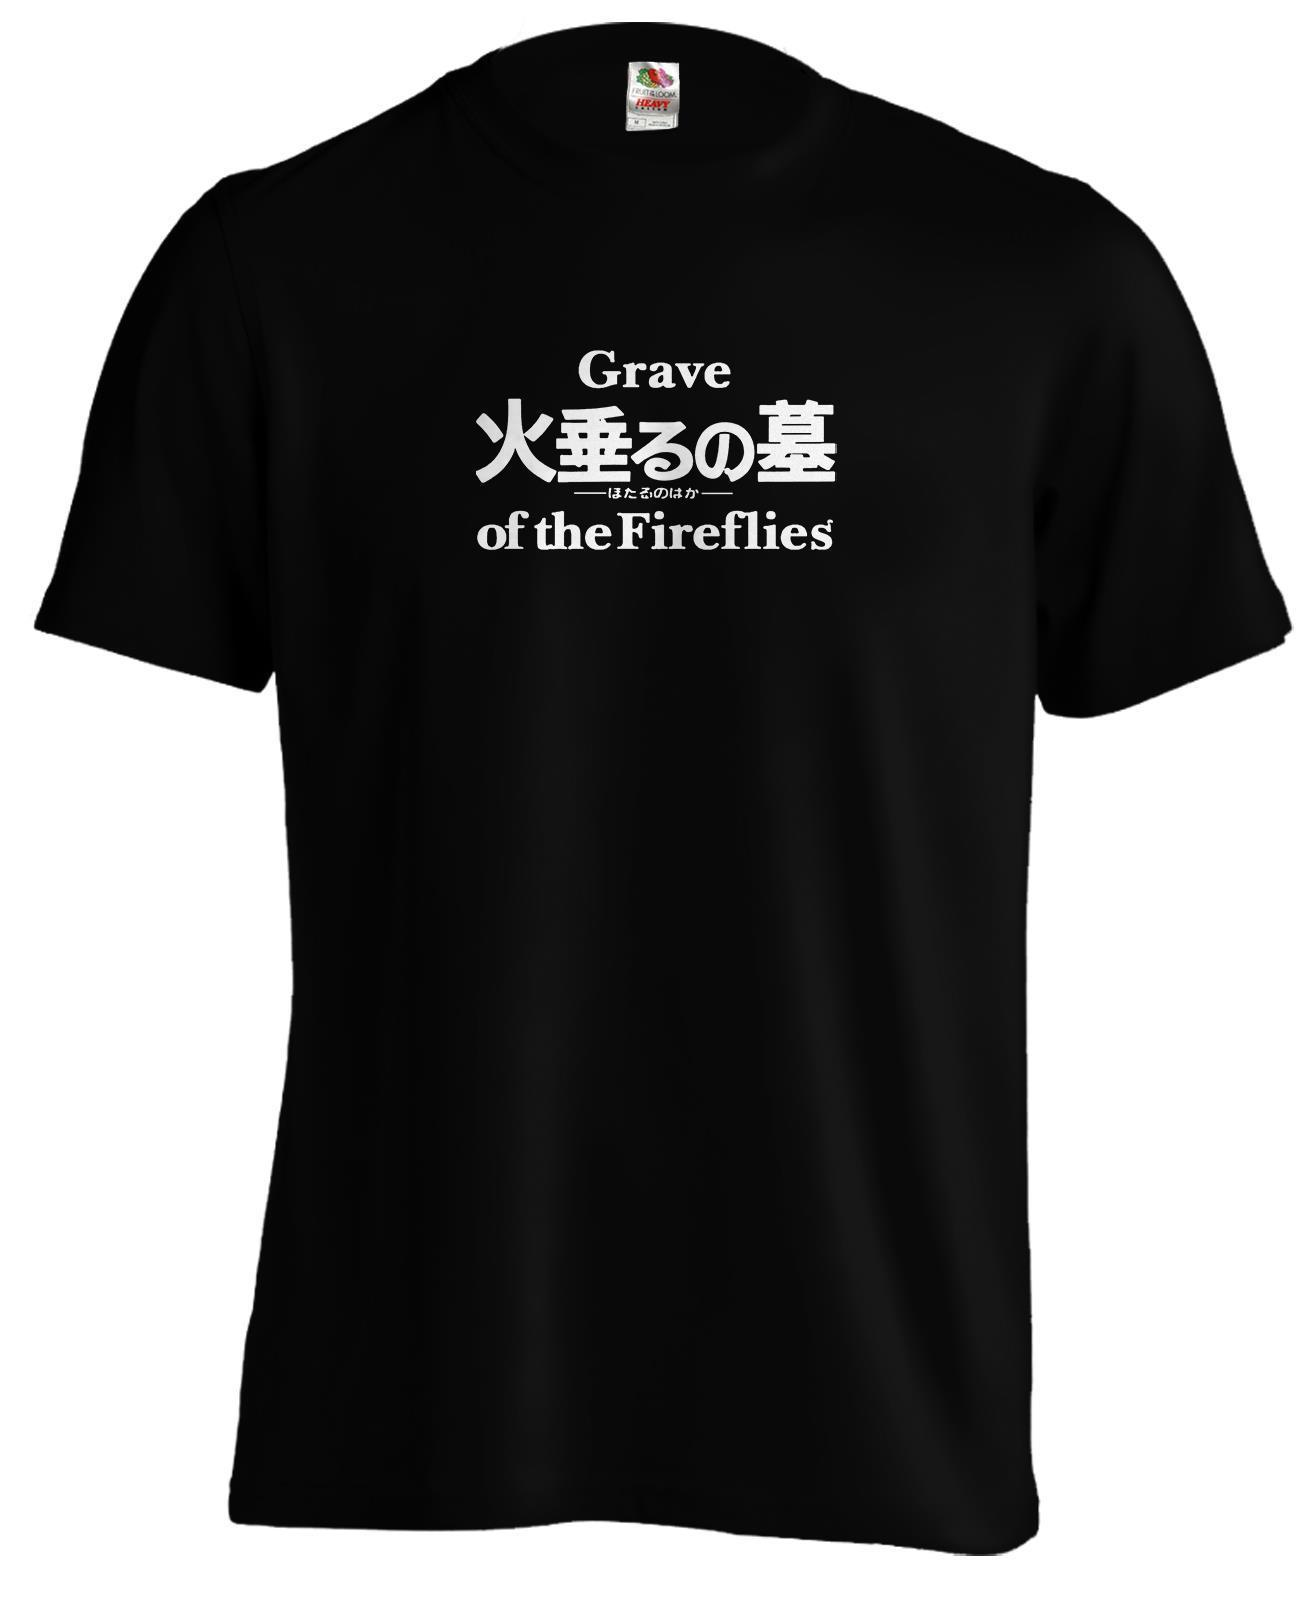 Grave of the Fireflies Ghibli Anime Manga T Shirt Tee New Shirts Funny Tops Unisex